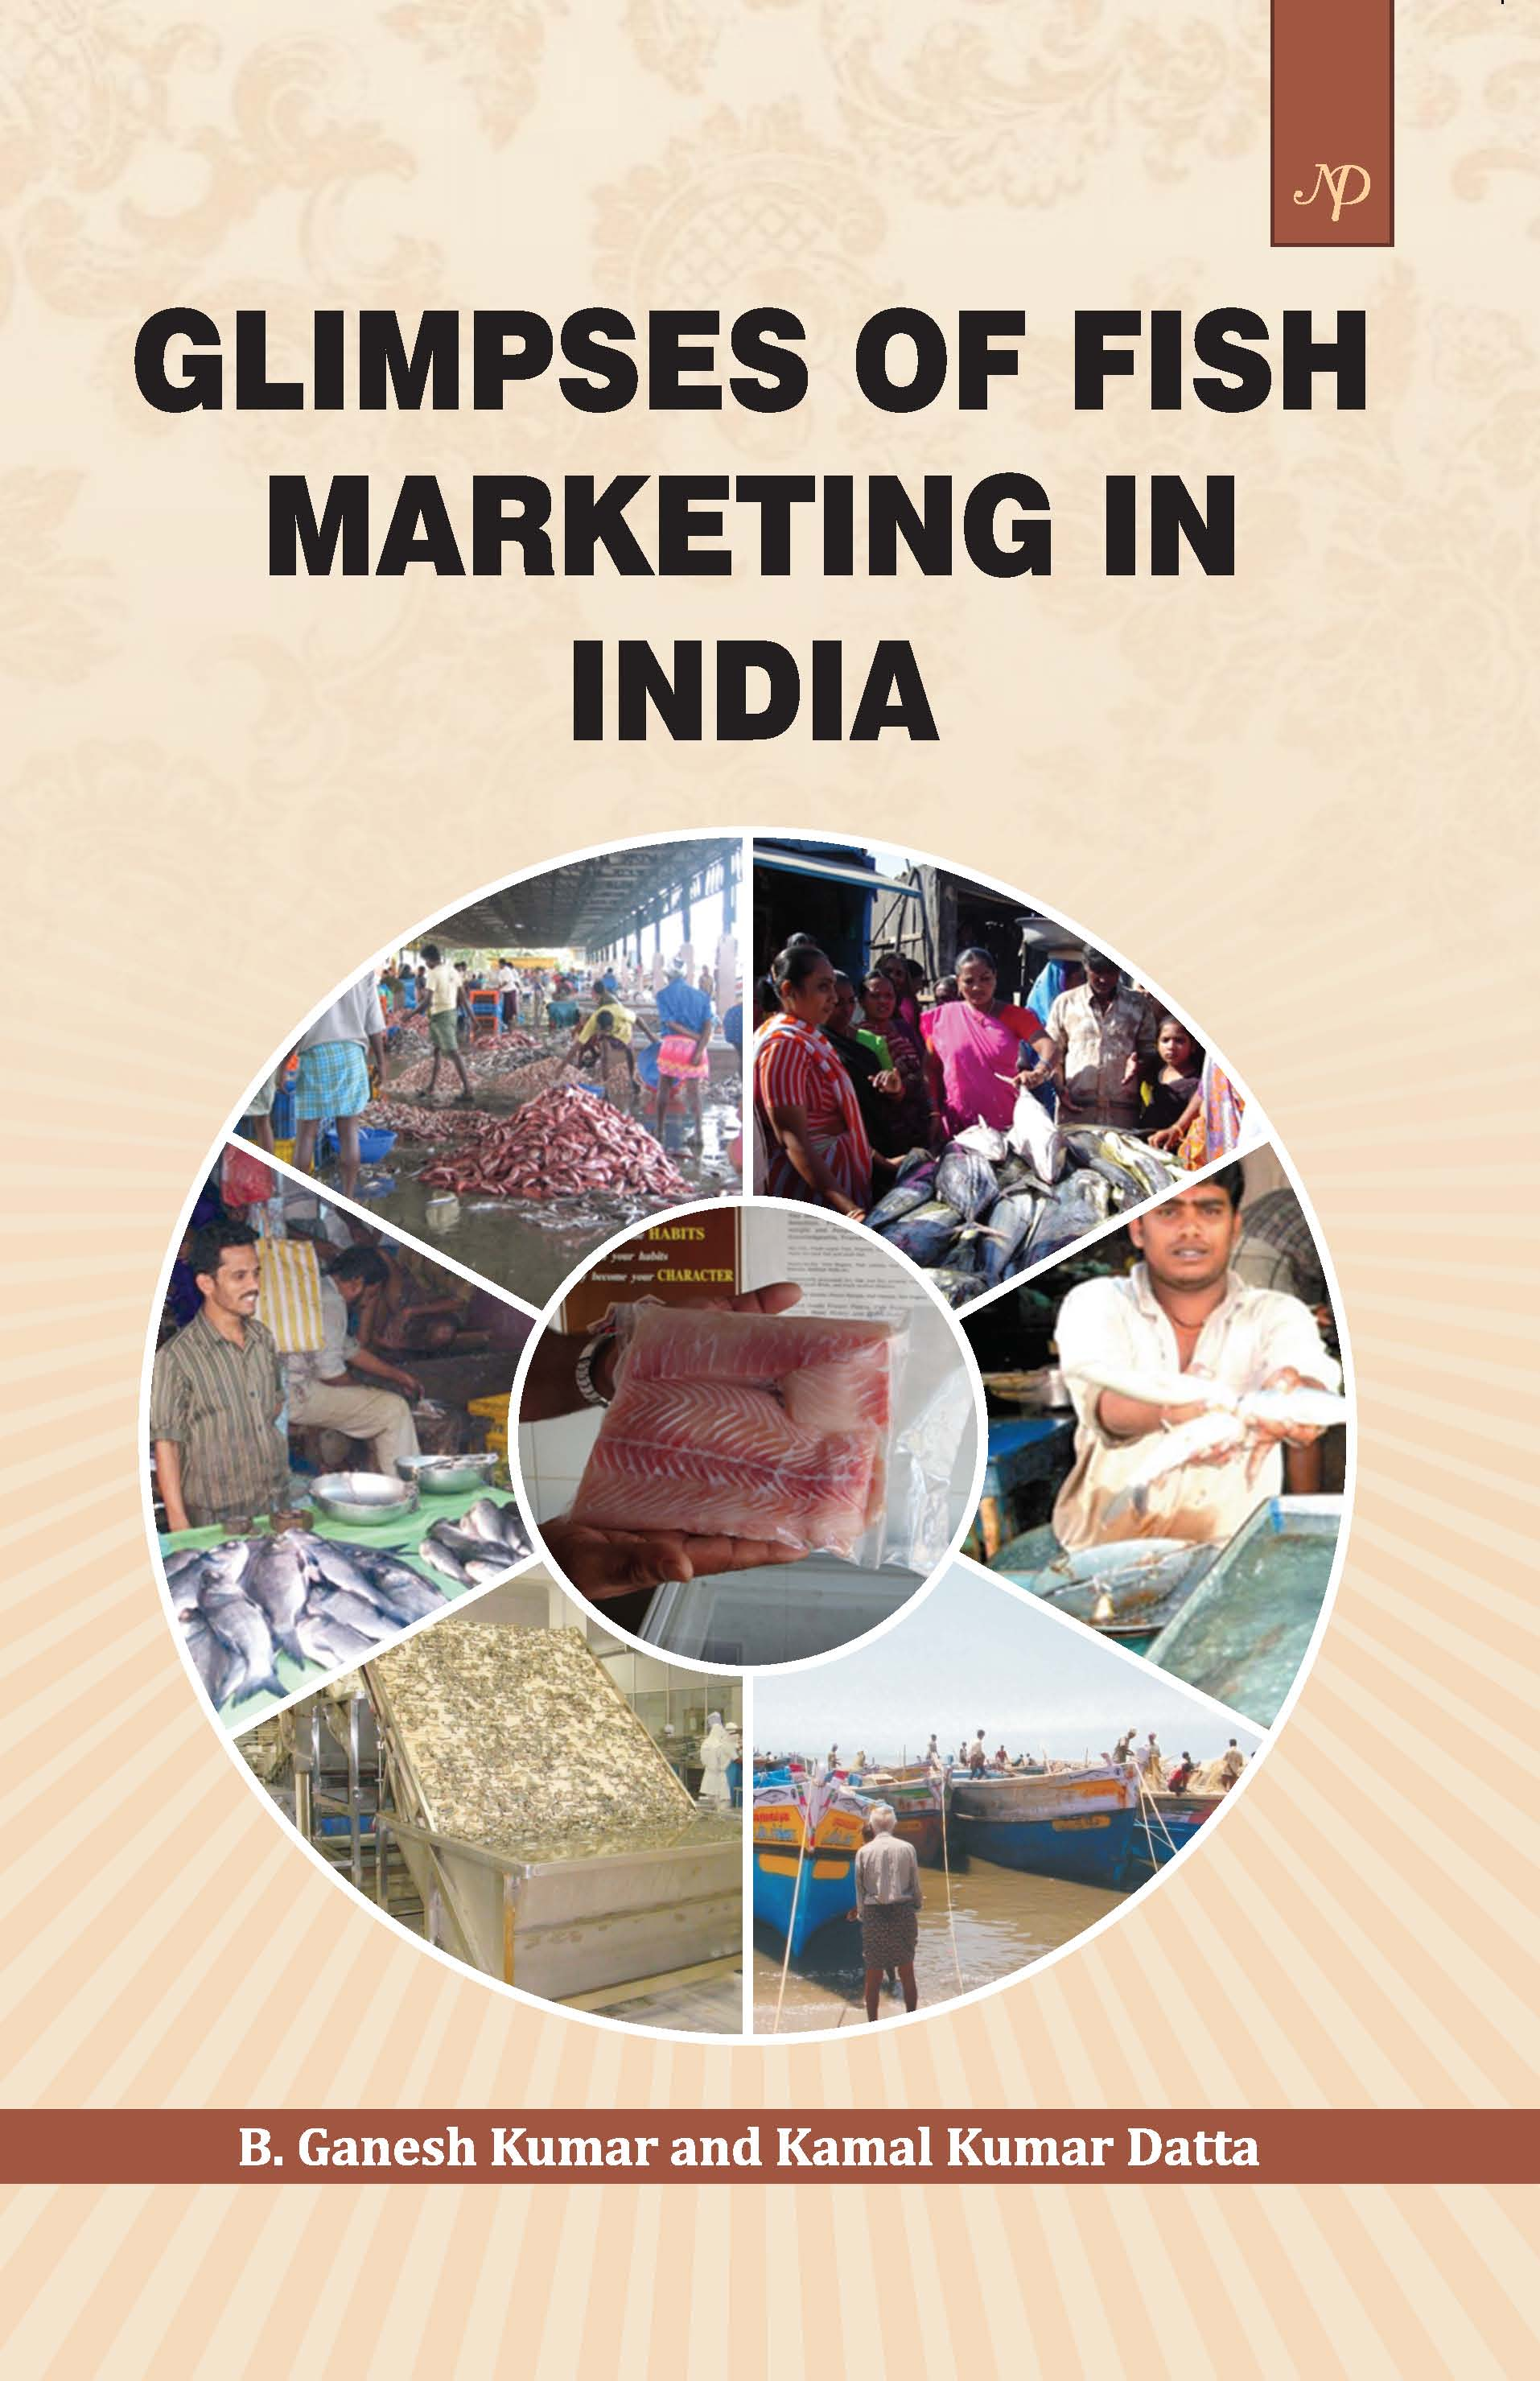 Glimpses of Fish Marketing in India